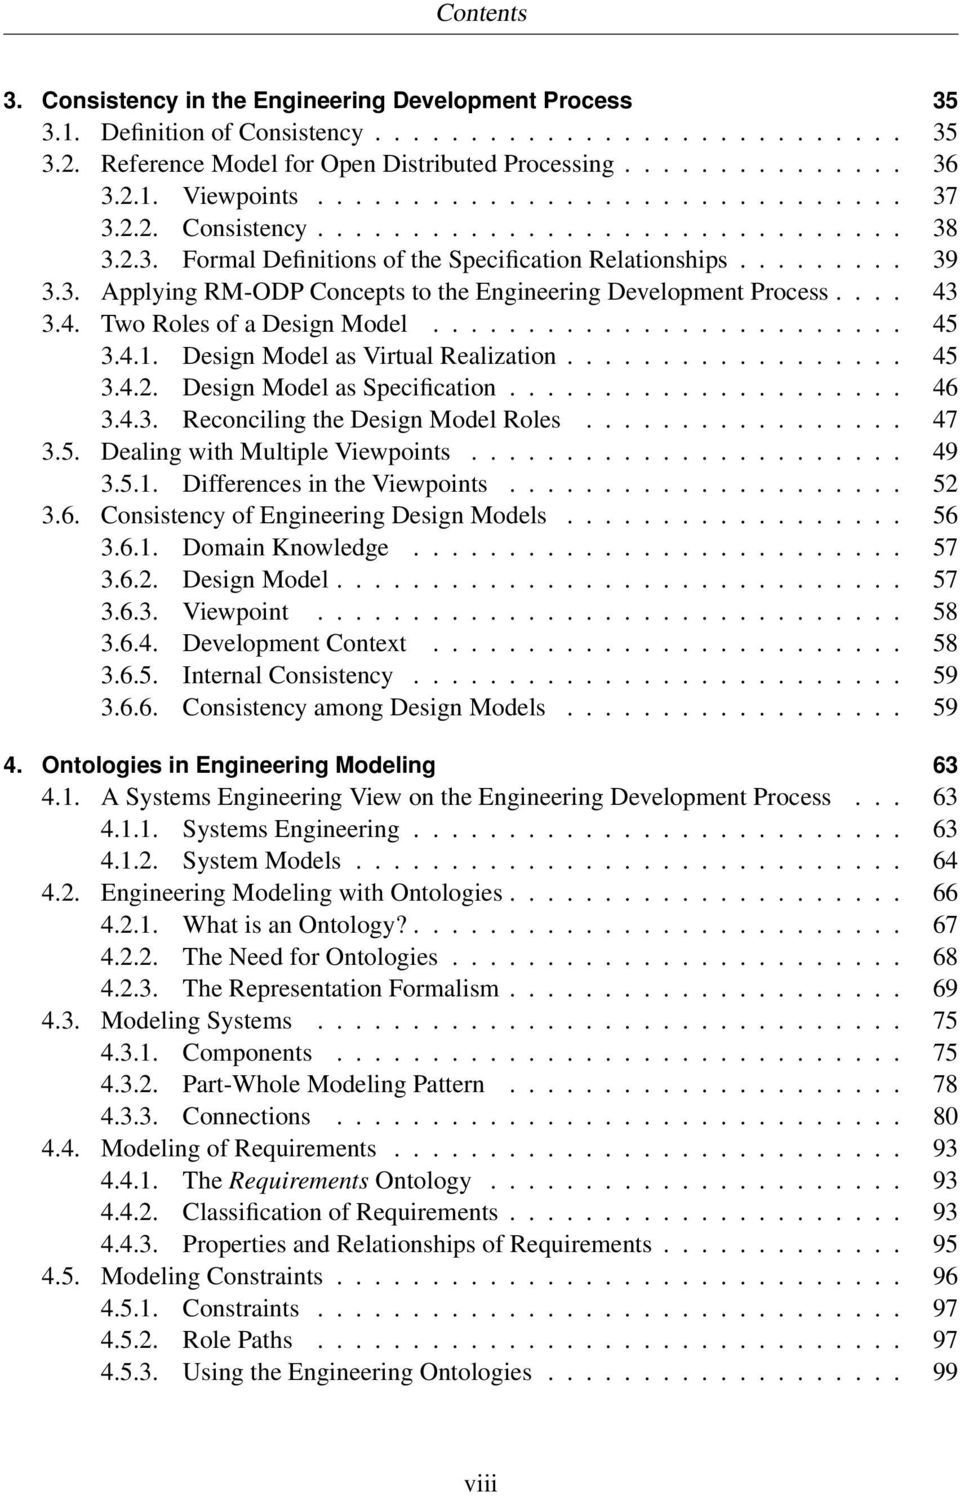 ... 43 3.4. Two Roles of a Design Model......................... 45 3.4.1. Design Model as Virtual Realization.................. 45 3.4.2. Design Model as Specification..................... 46 3.4.3. Reconciling the Design Model Roles.